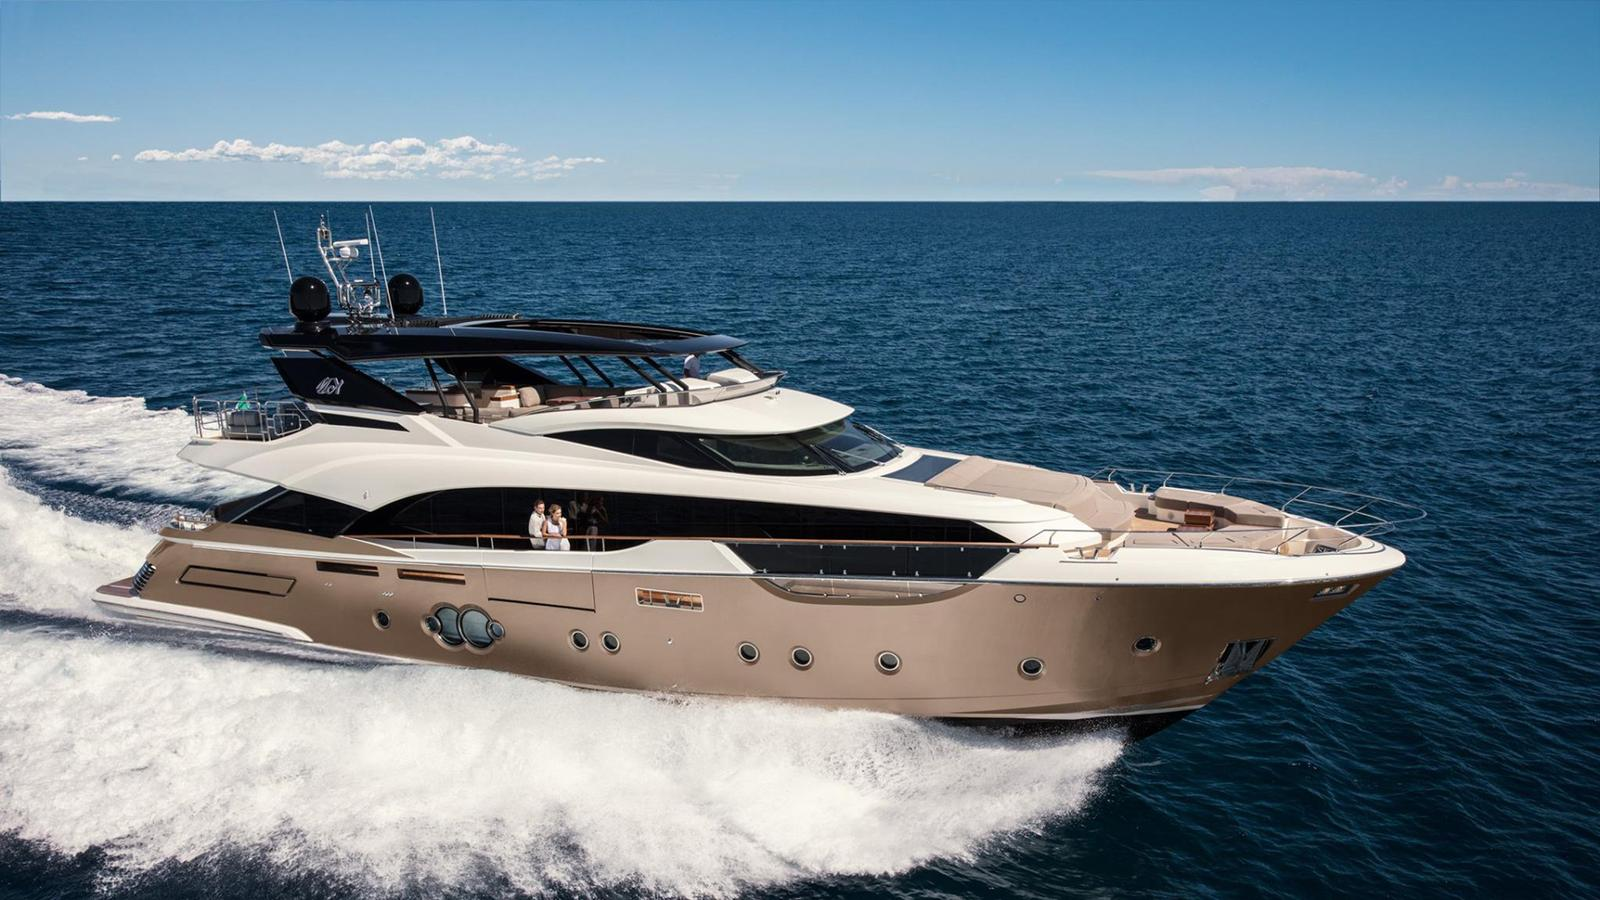 mia-was-launched-by-monte-carlo-yachts-in-summer-2017-as-the-first-mcy96-yacht